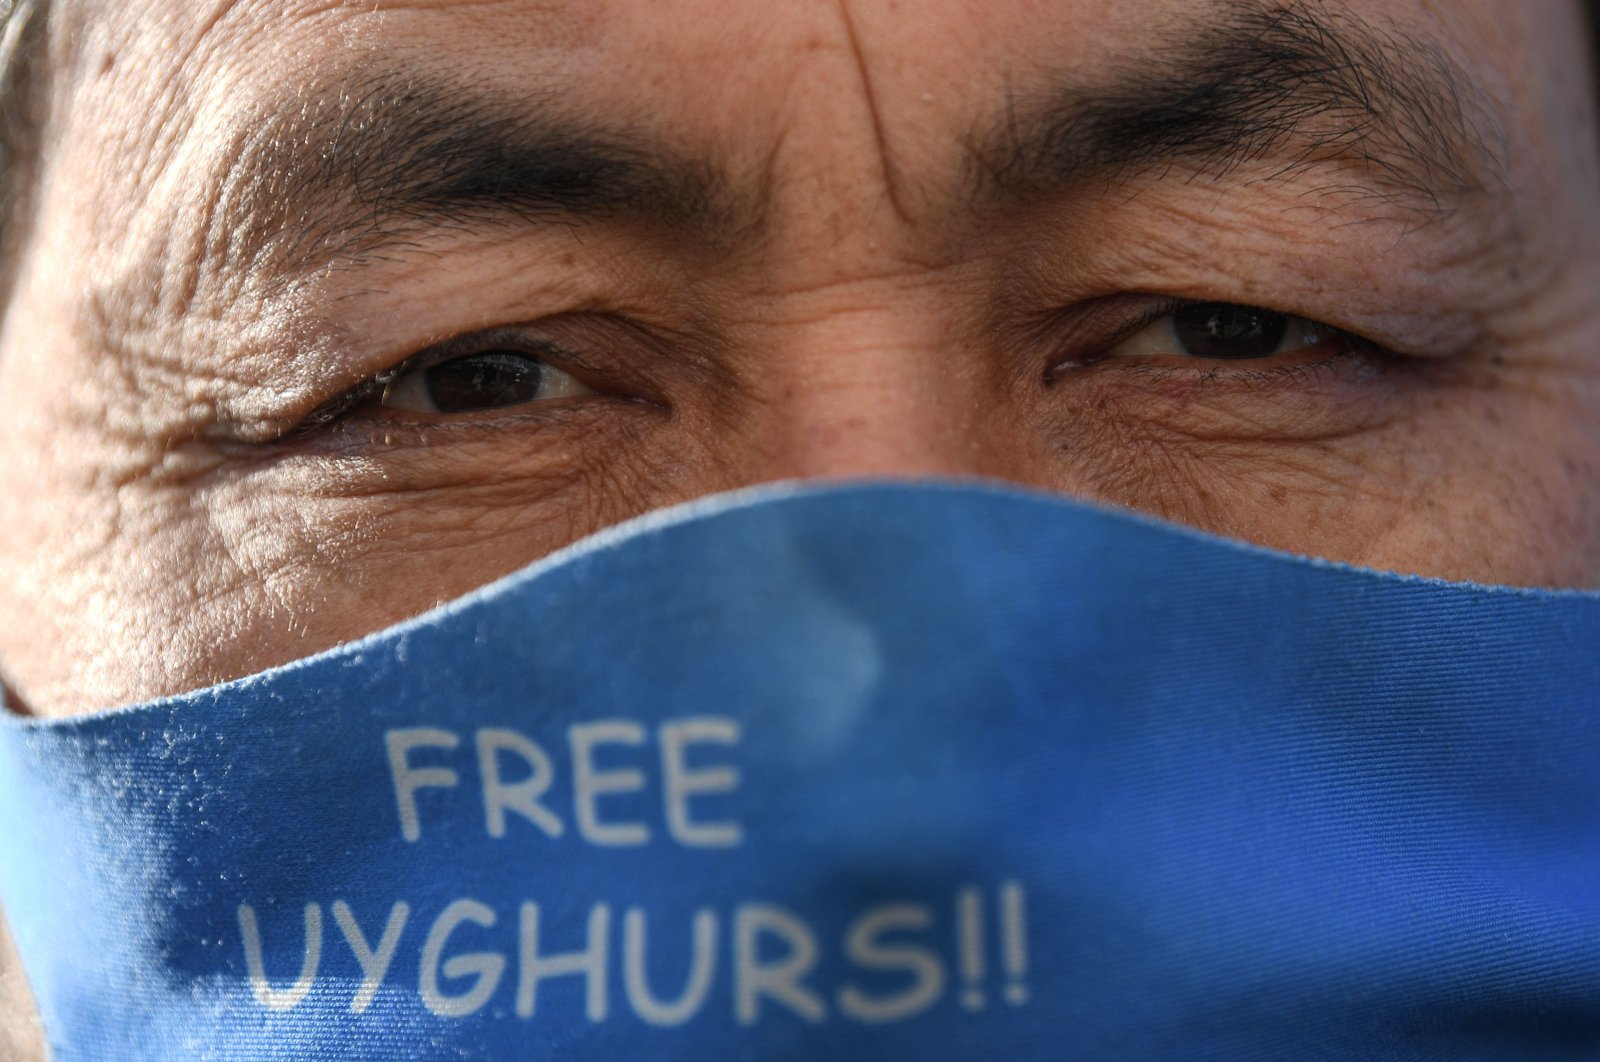 A member of the Uyghur minority wears a face mask to protect against the spread of the coronavirus as they demonstrate near China's consulate in Istanbul, Turkey, Feb. 22, 2021. (AFP Photo)